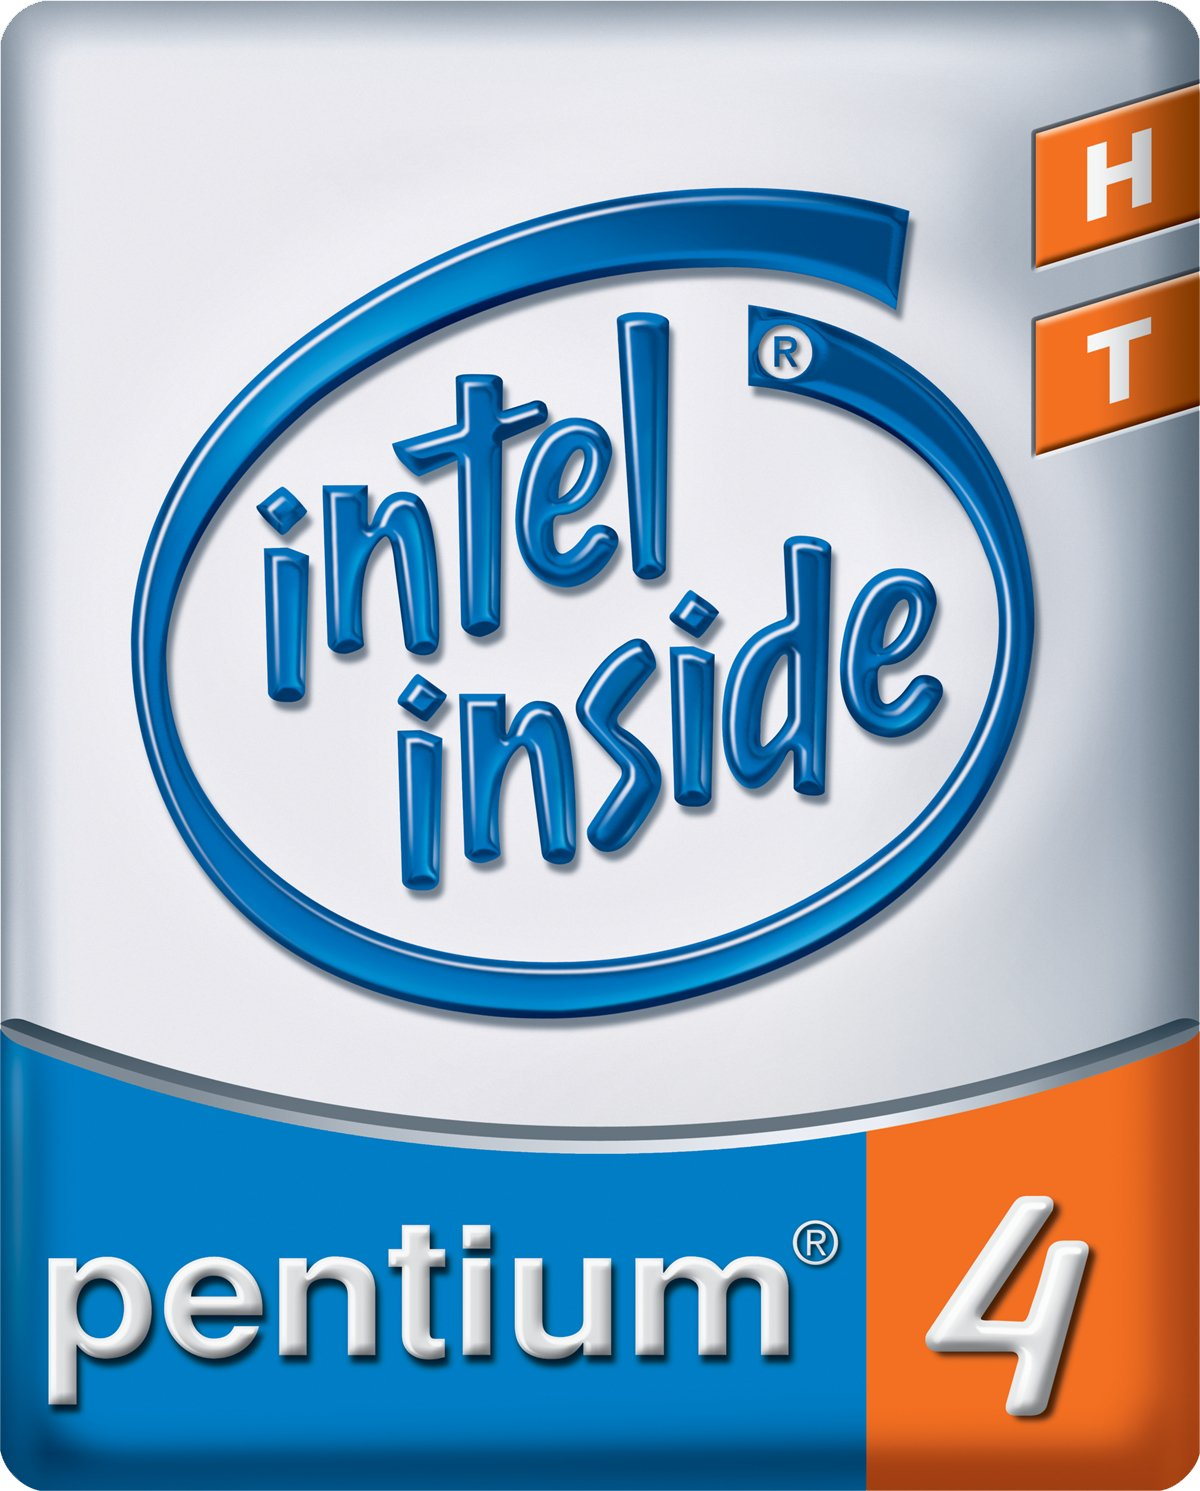 Intel Pentium 4 3.2 GHz 640 2M 800MHz Socket LGA775 Processor with Hyper-Threading Support